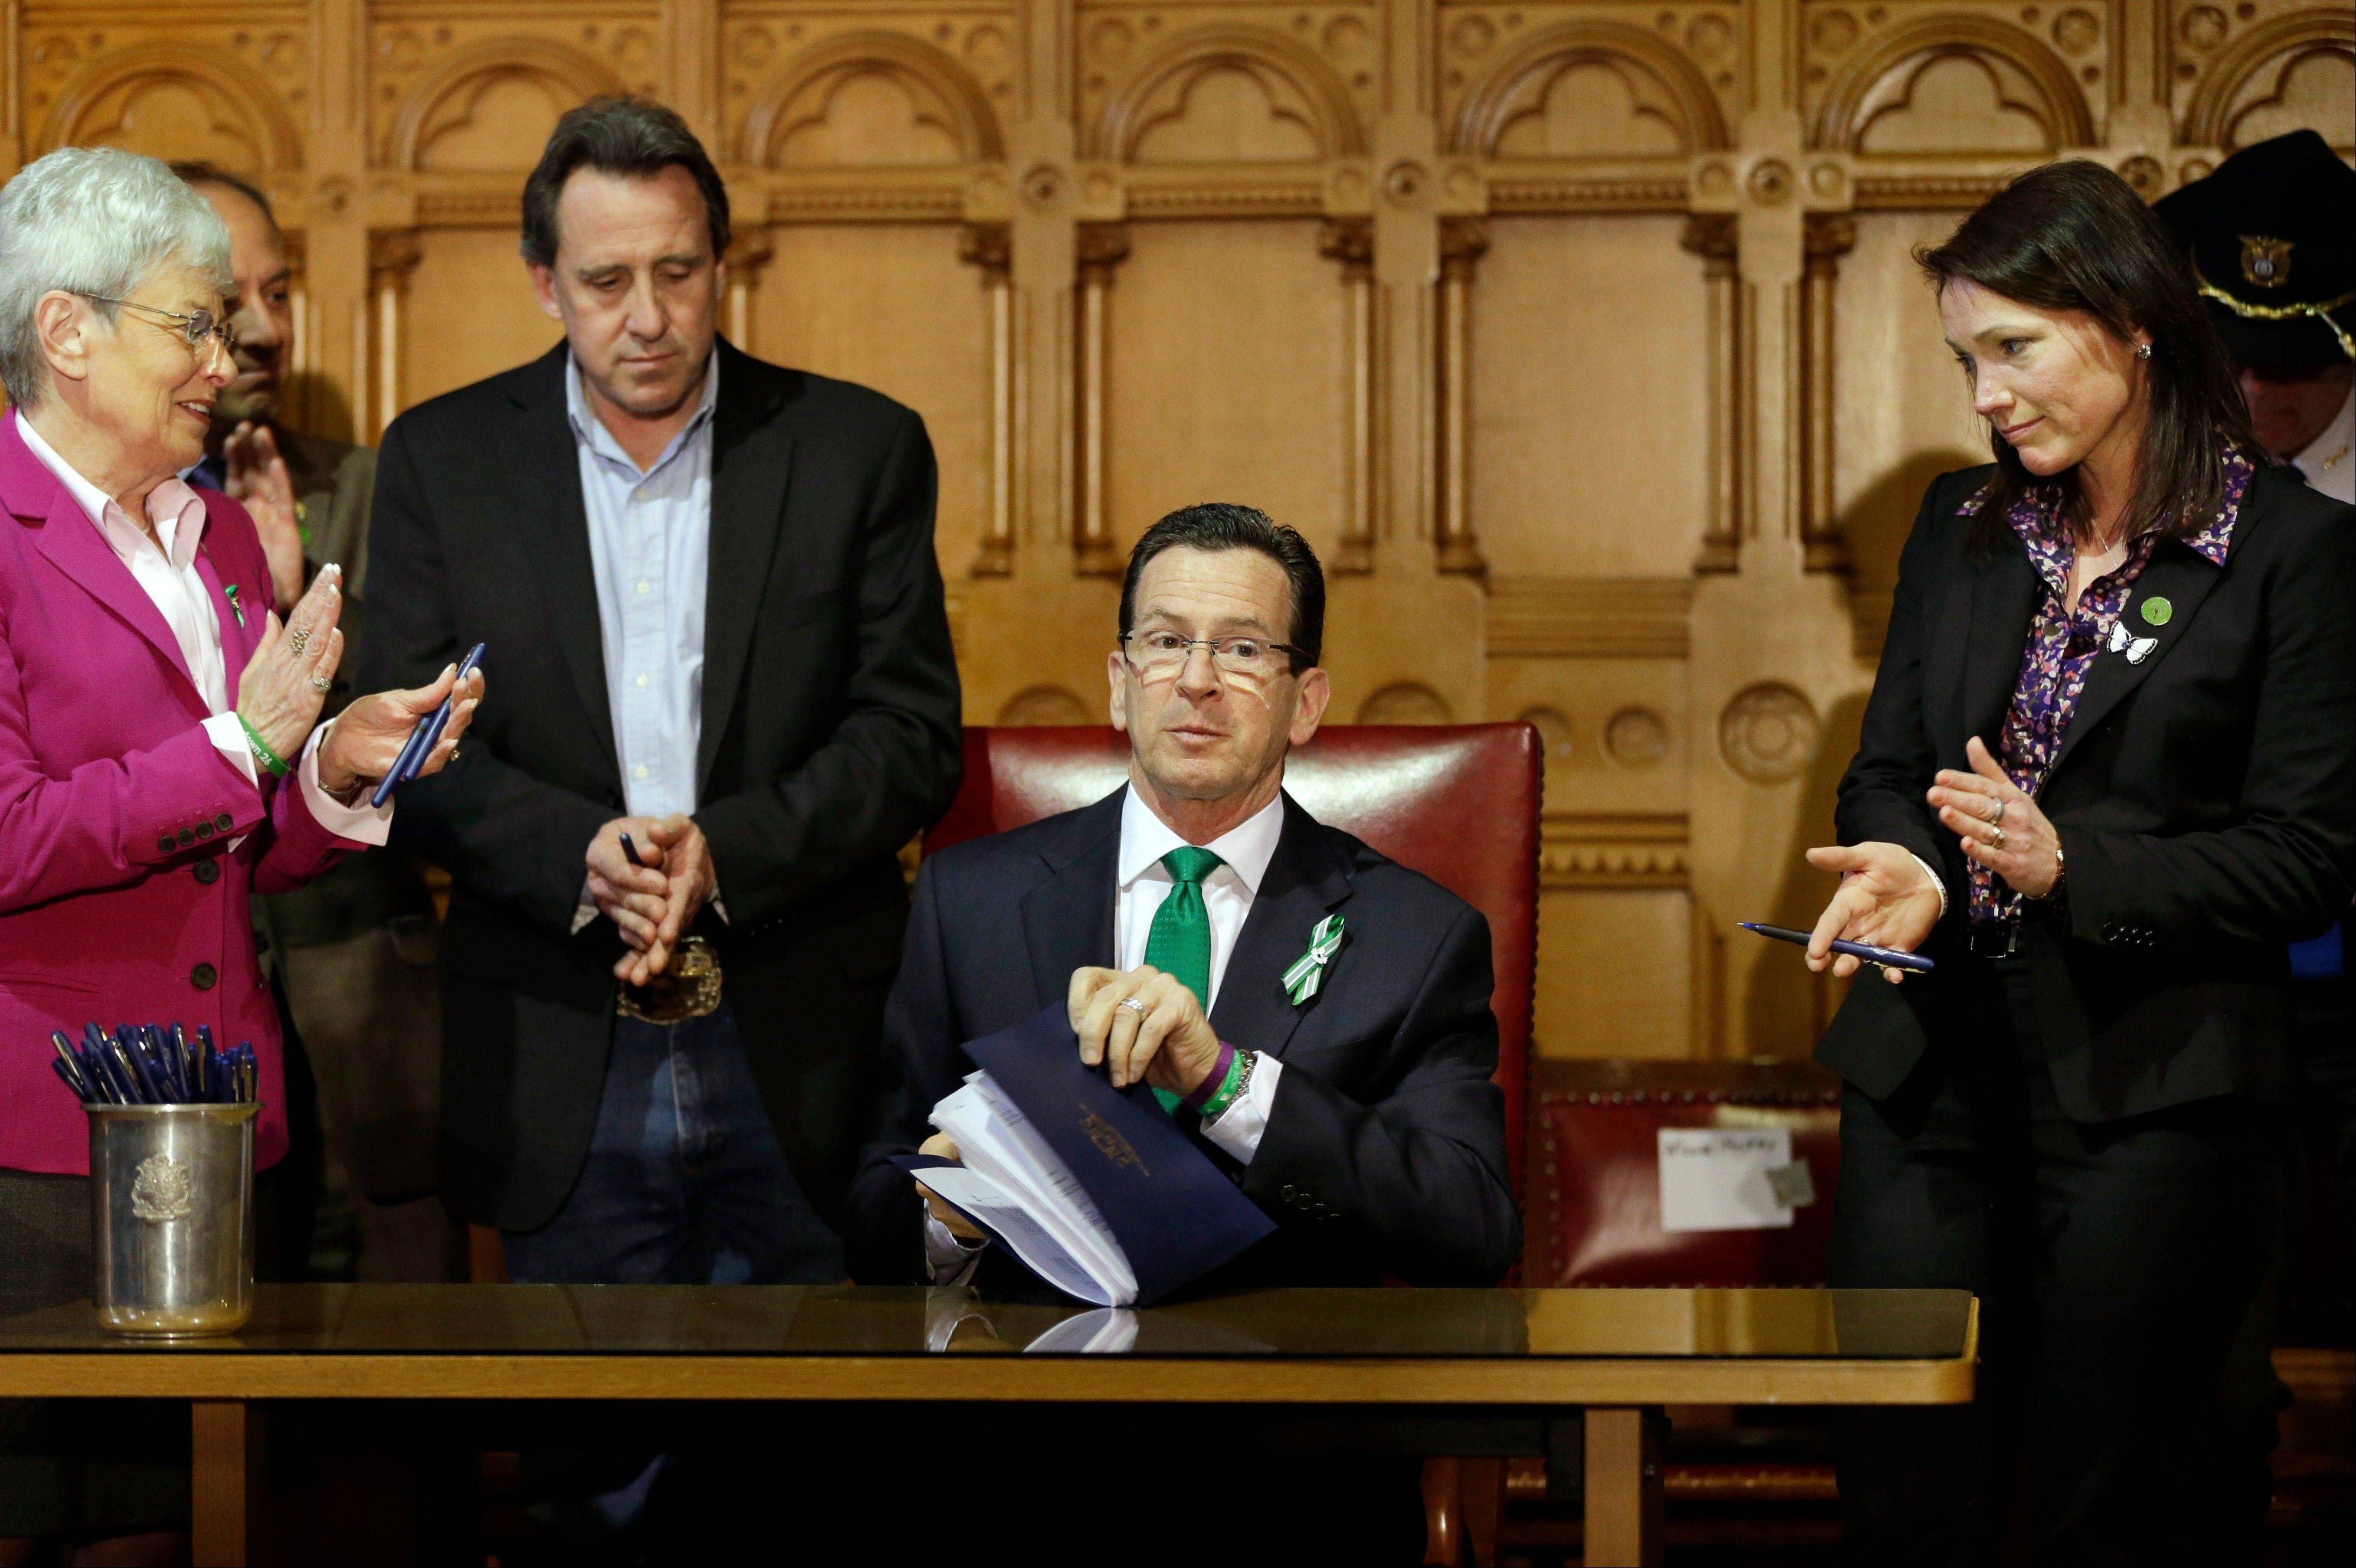 Connecticut Gov. Dannel P. Malloy, center, signs legislation that includes new restrictions on weapons and large capacity ammunition magazines at the Capitol in Hartford, Conn., Thursday.